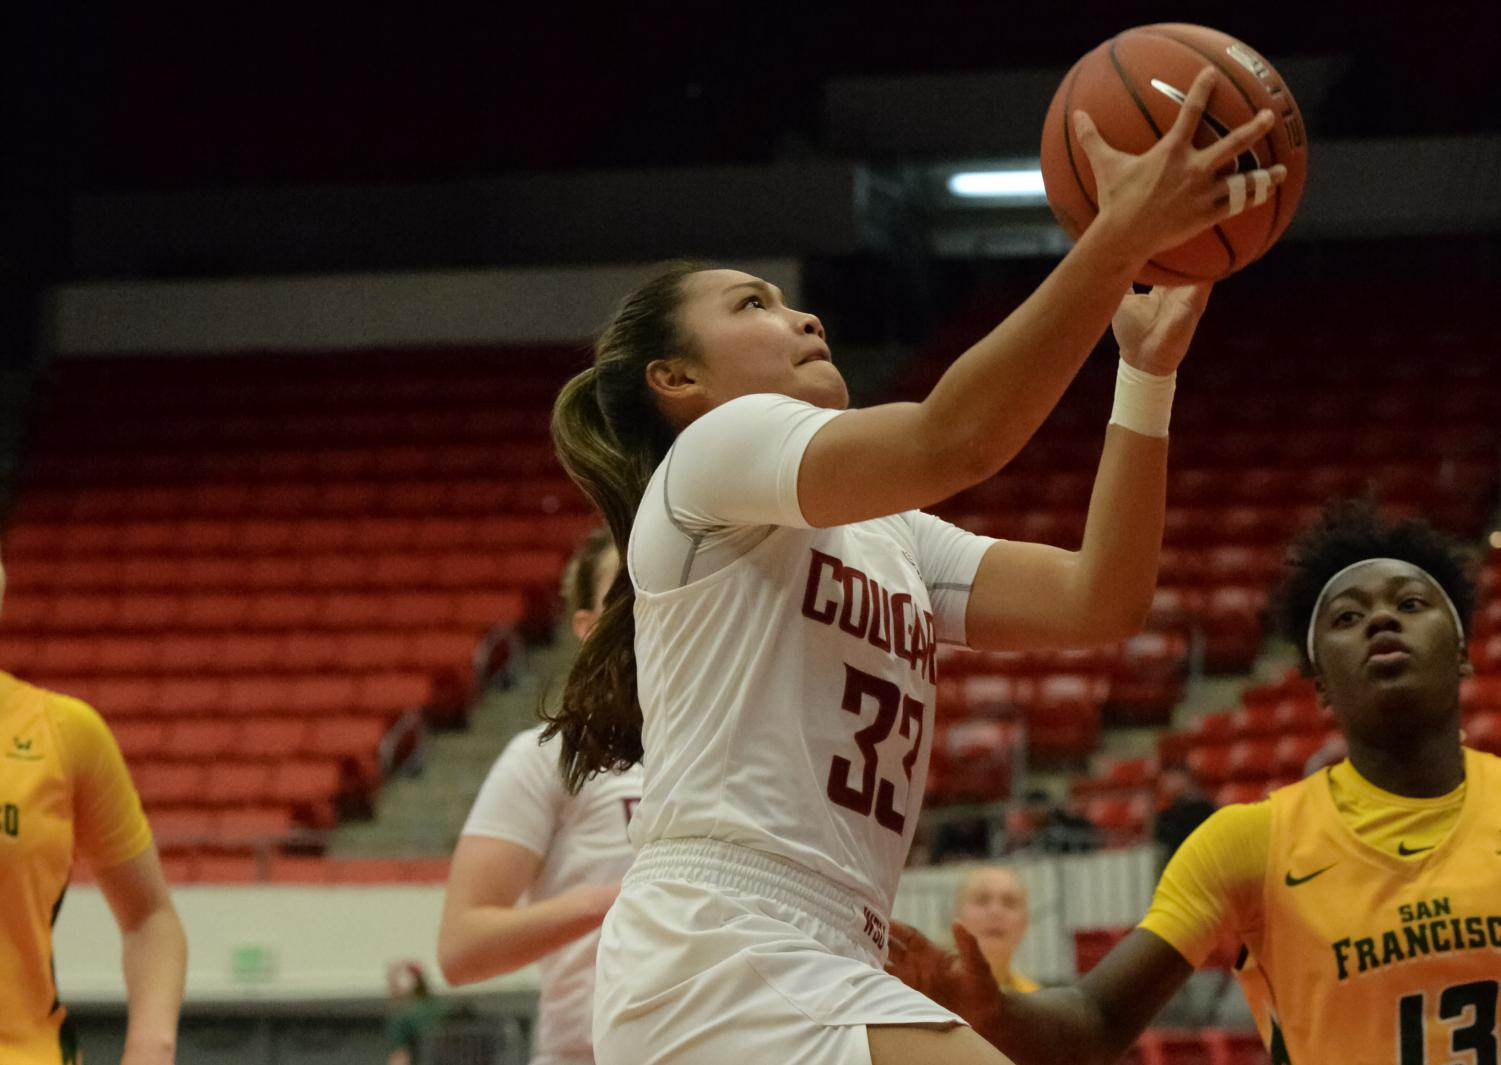 hight resolution of freshman guard cherilyn molina runs up the court for a layup against san francisco on nov